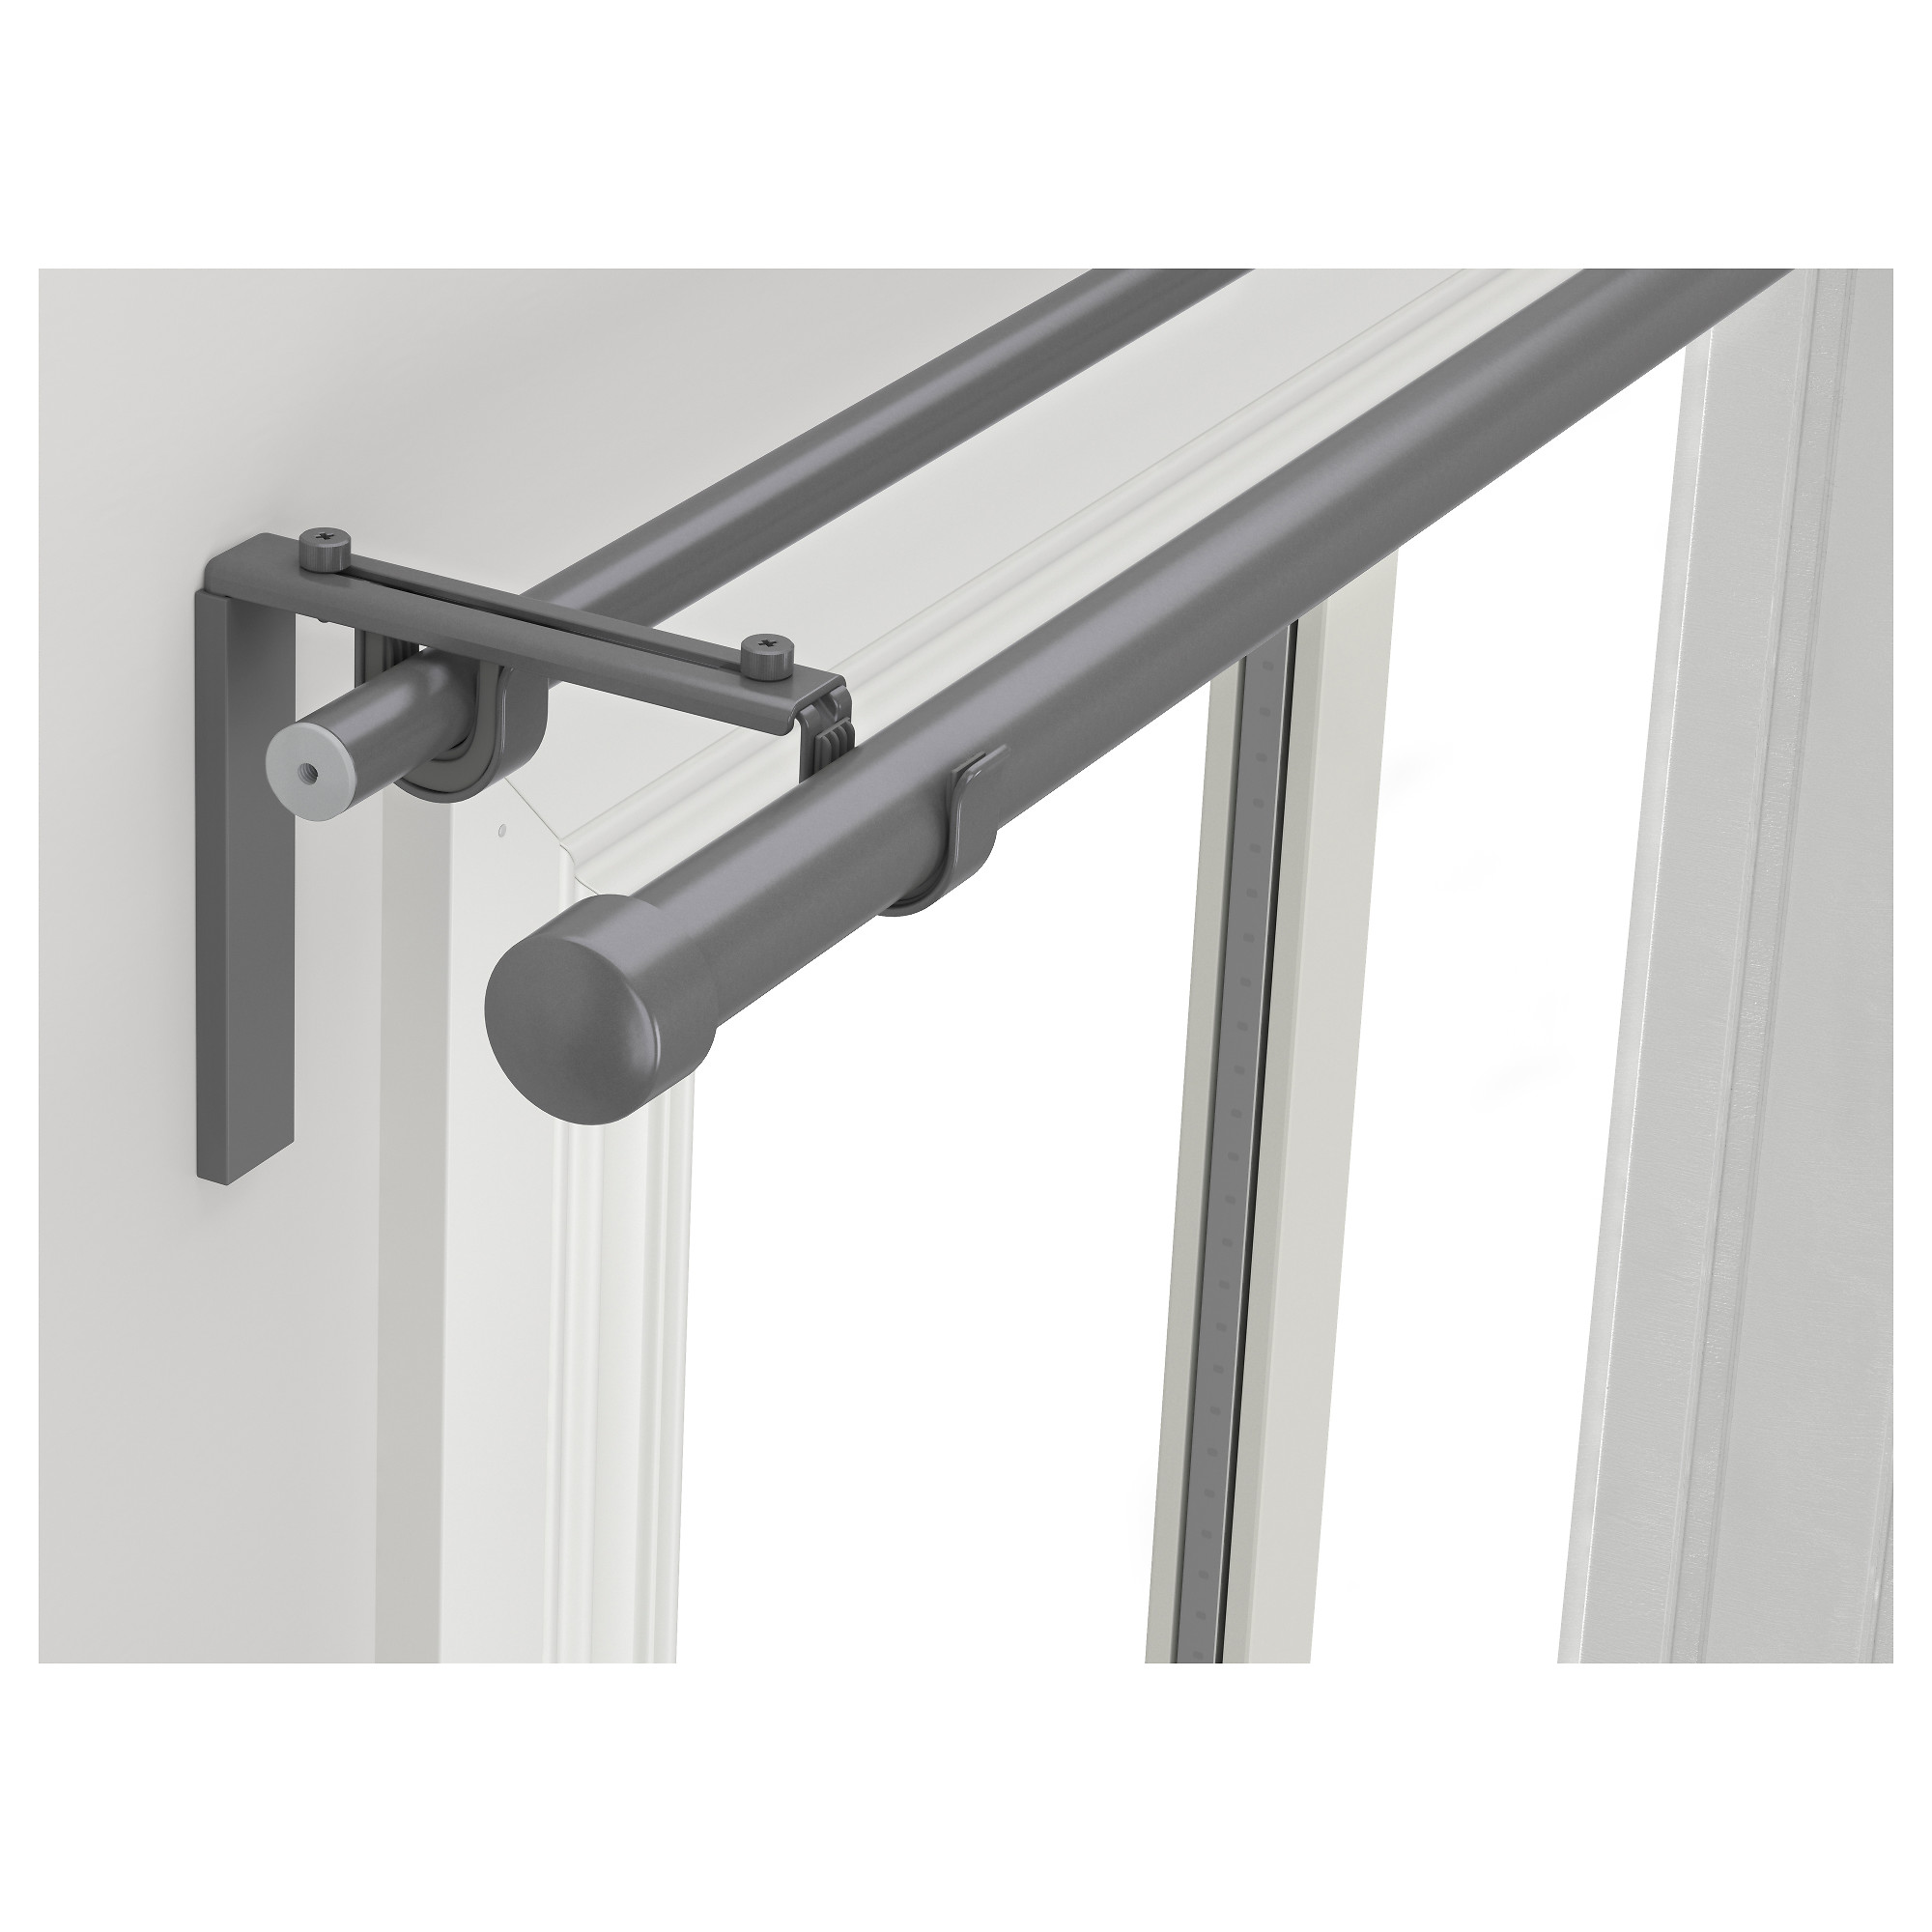 RÄCKA / HUGAD Double Curtain Rod Combination, Silver Color Min. Length: 82 5